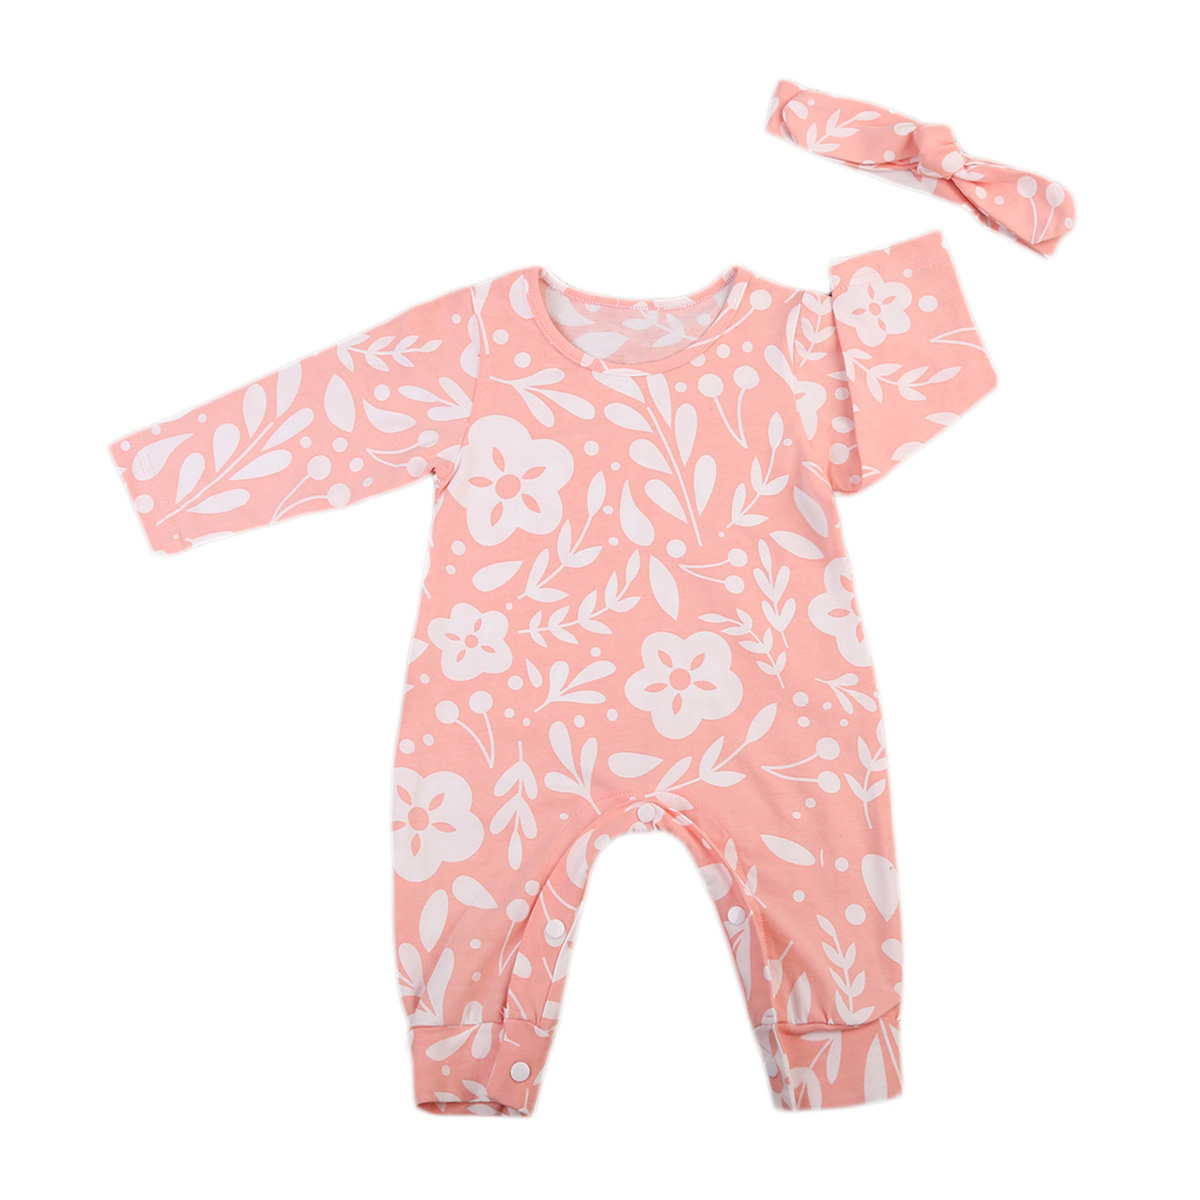 Infant Baby Girls Clothing Floral Romper Long Sleeve Cotton Flower Cute Jumpsuit Headband Outfits 2pcs Clothes 0-24M infant newborn baby girl summer casual clothes big ruffles sleeve watermelon romper outfits sunsuit jumpsuit clothing